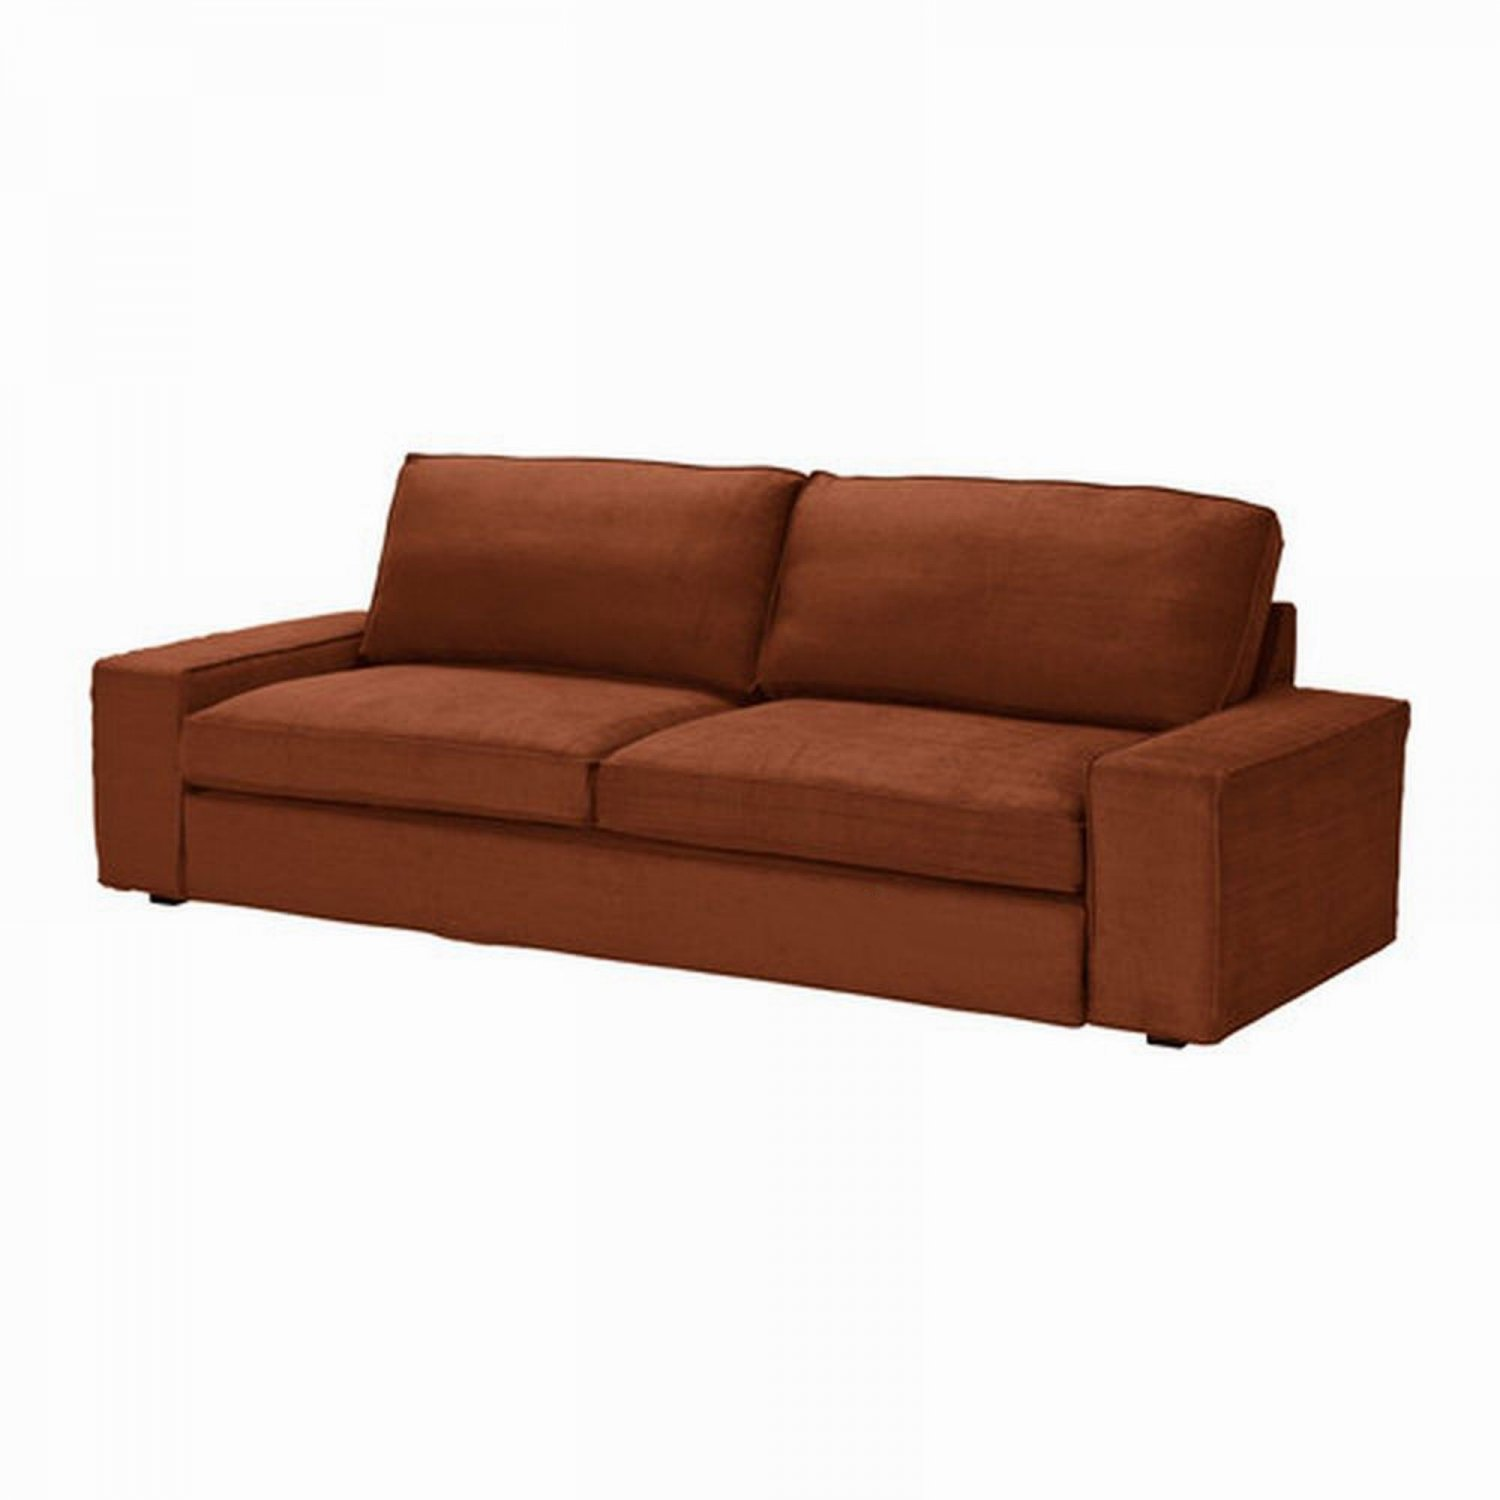 ikea kivik sofa bed slipcover cover tullinge rust brown bezug housse. Black Bedroom Furniture Sets. Home Design Ideas